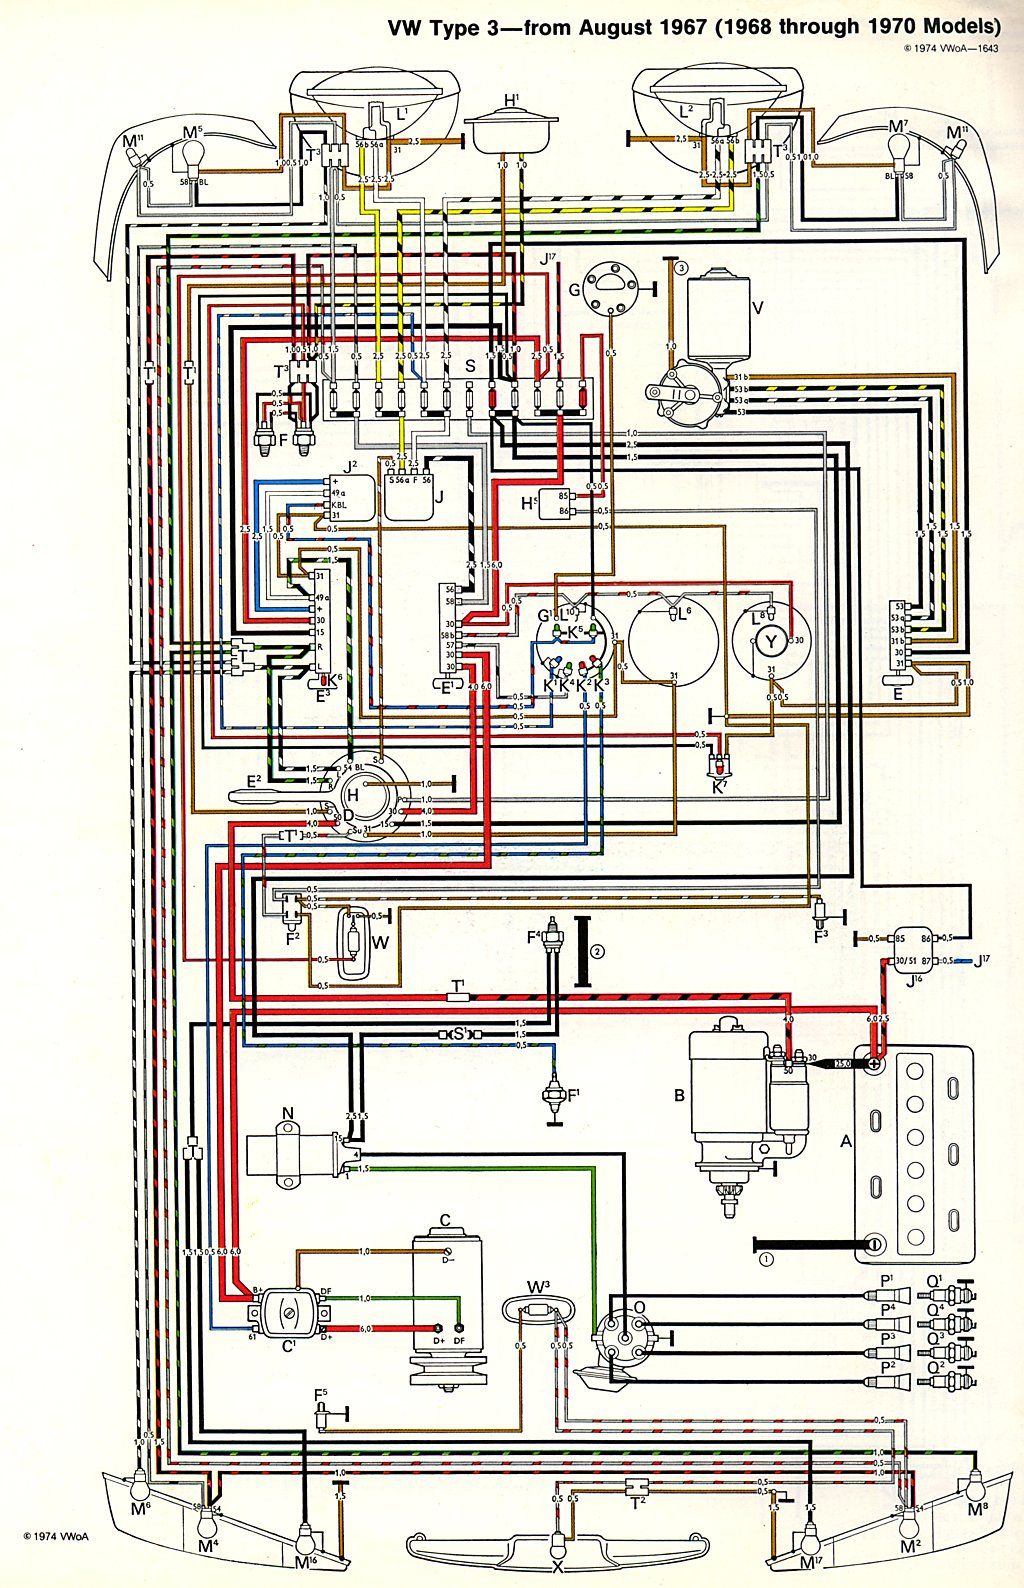 type3_6870 vw thing wiring diagram 1974 beetle heater diagram \u2022 wiring 1971 vw bus wiring diagram at bayanpartner.co